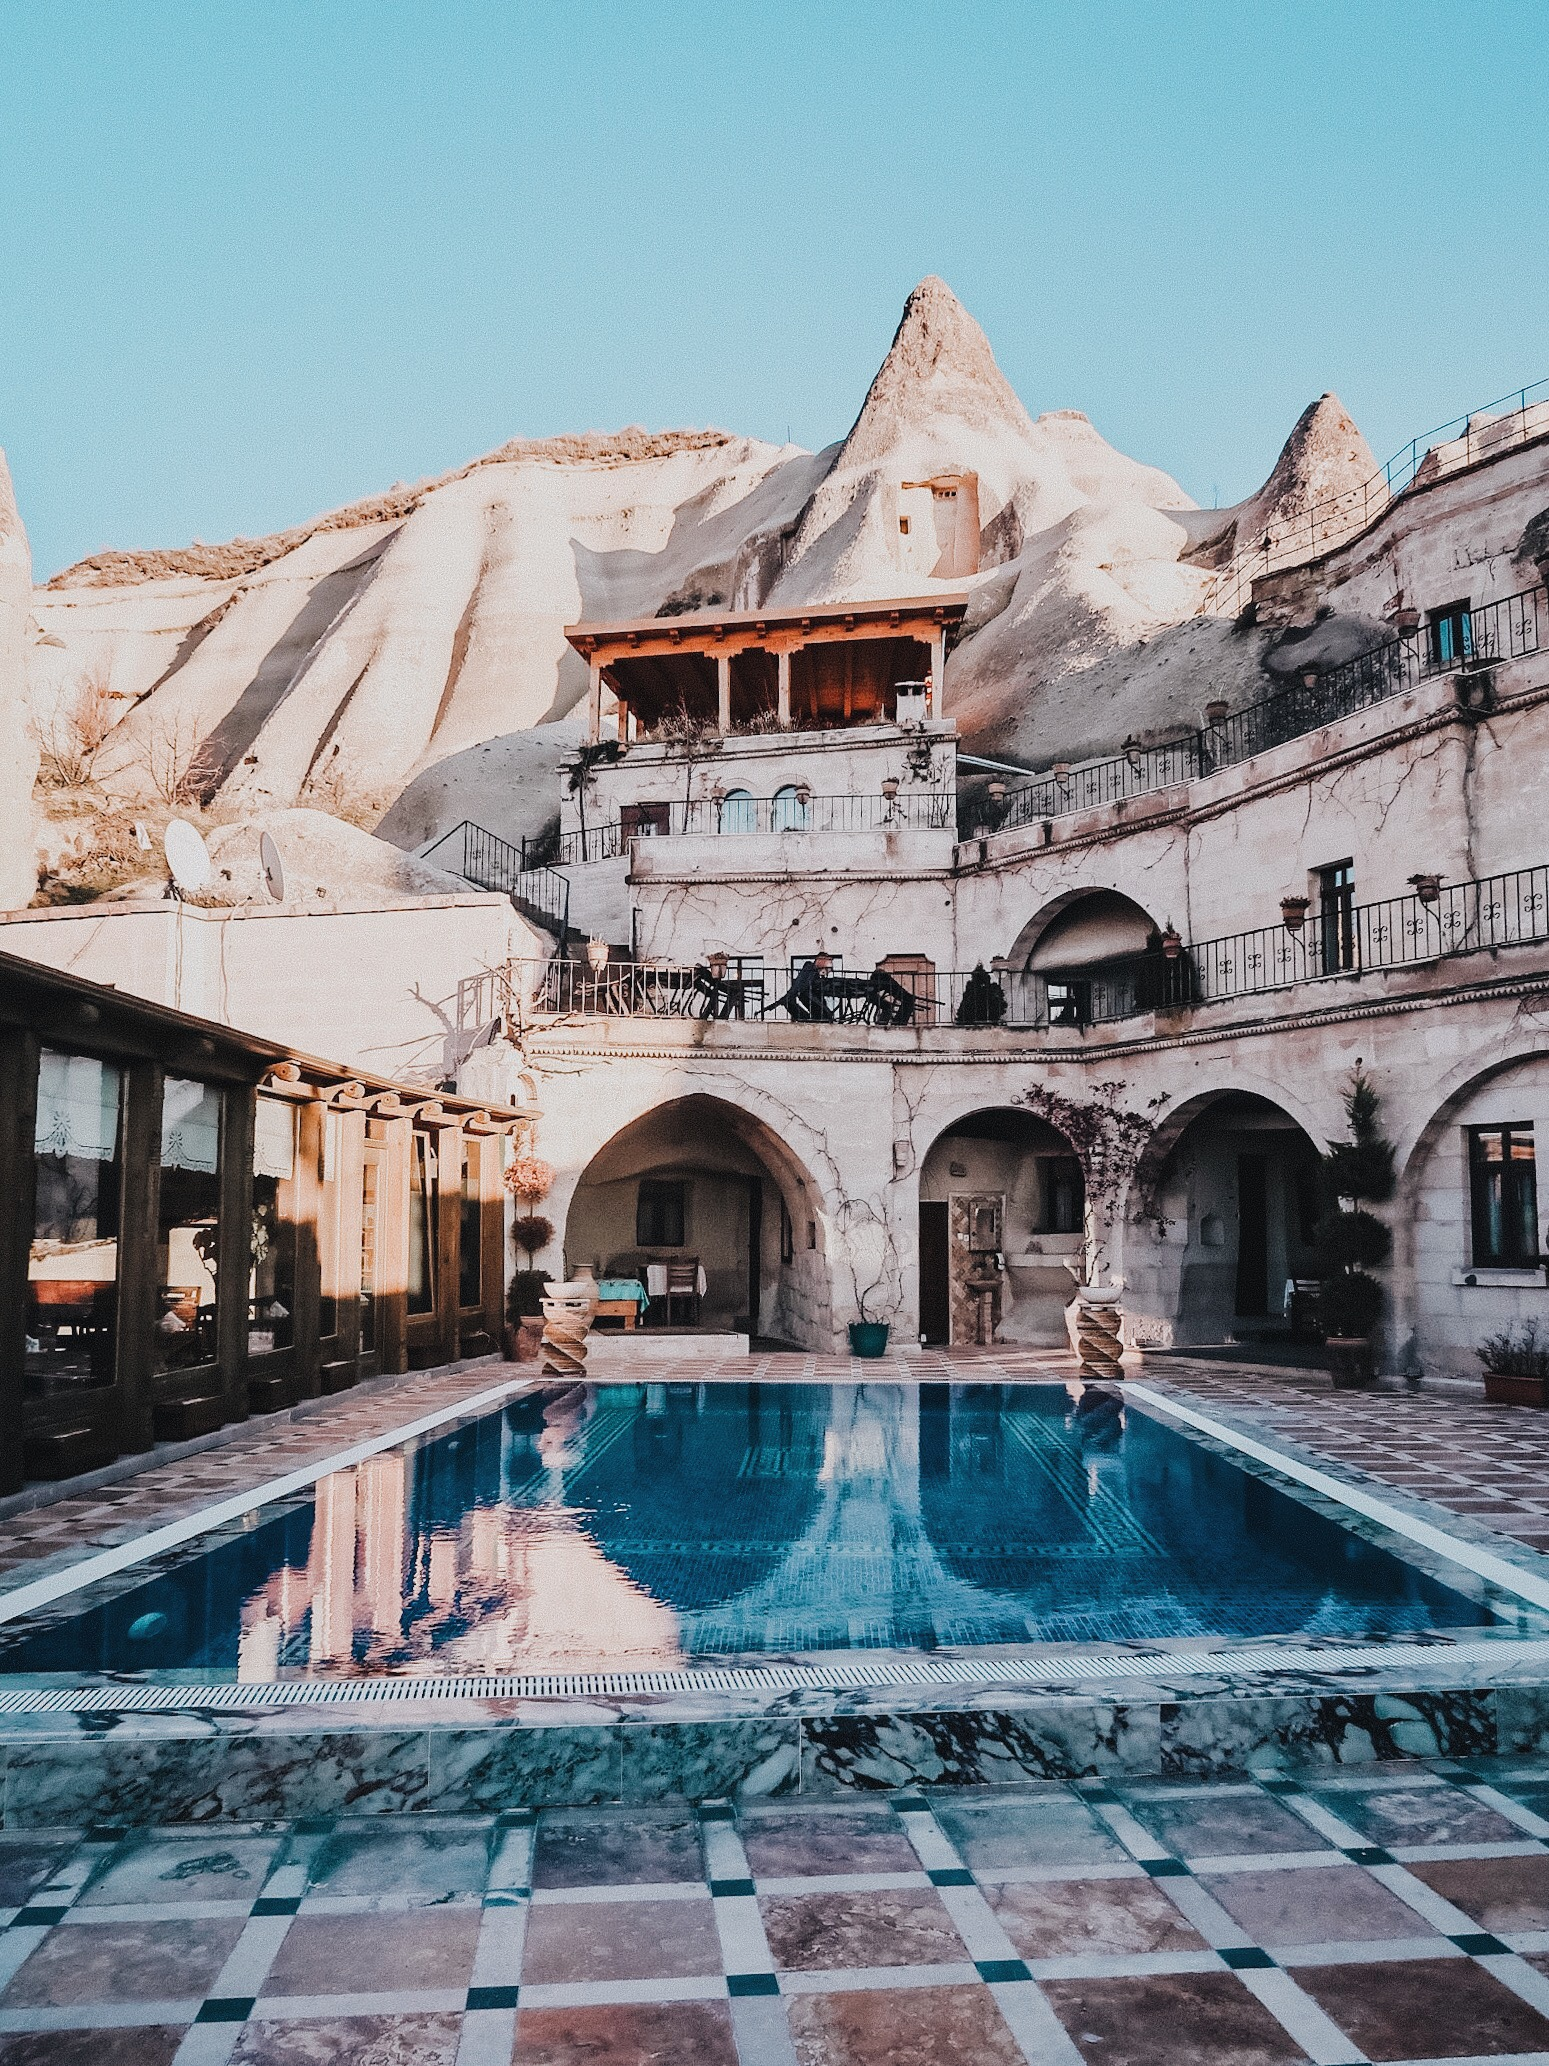 Illustrated by Sade - Incredible pool at the Local Cave House in Cappadocia